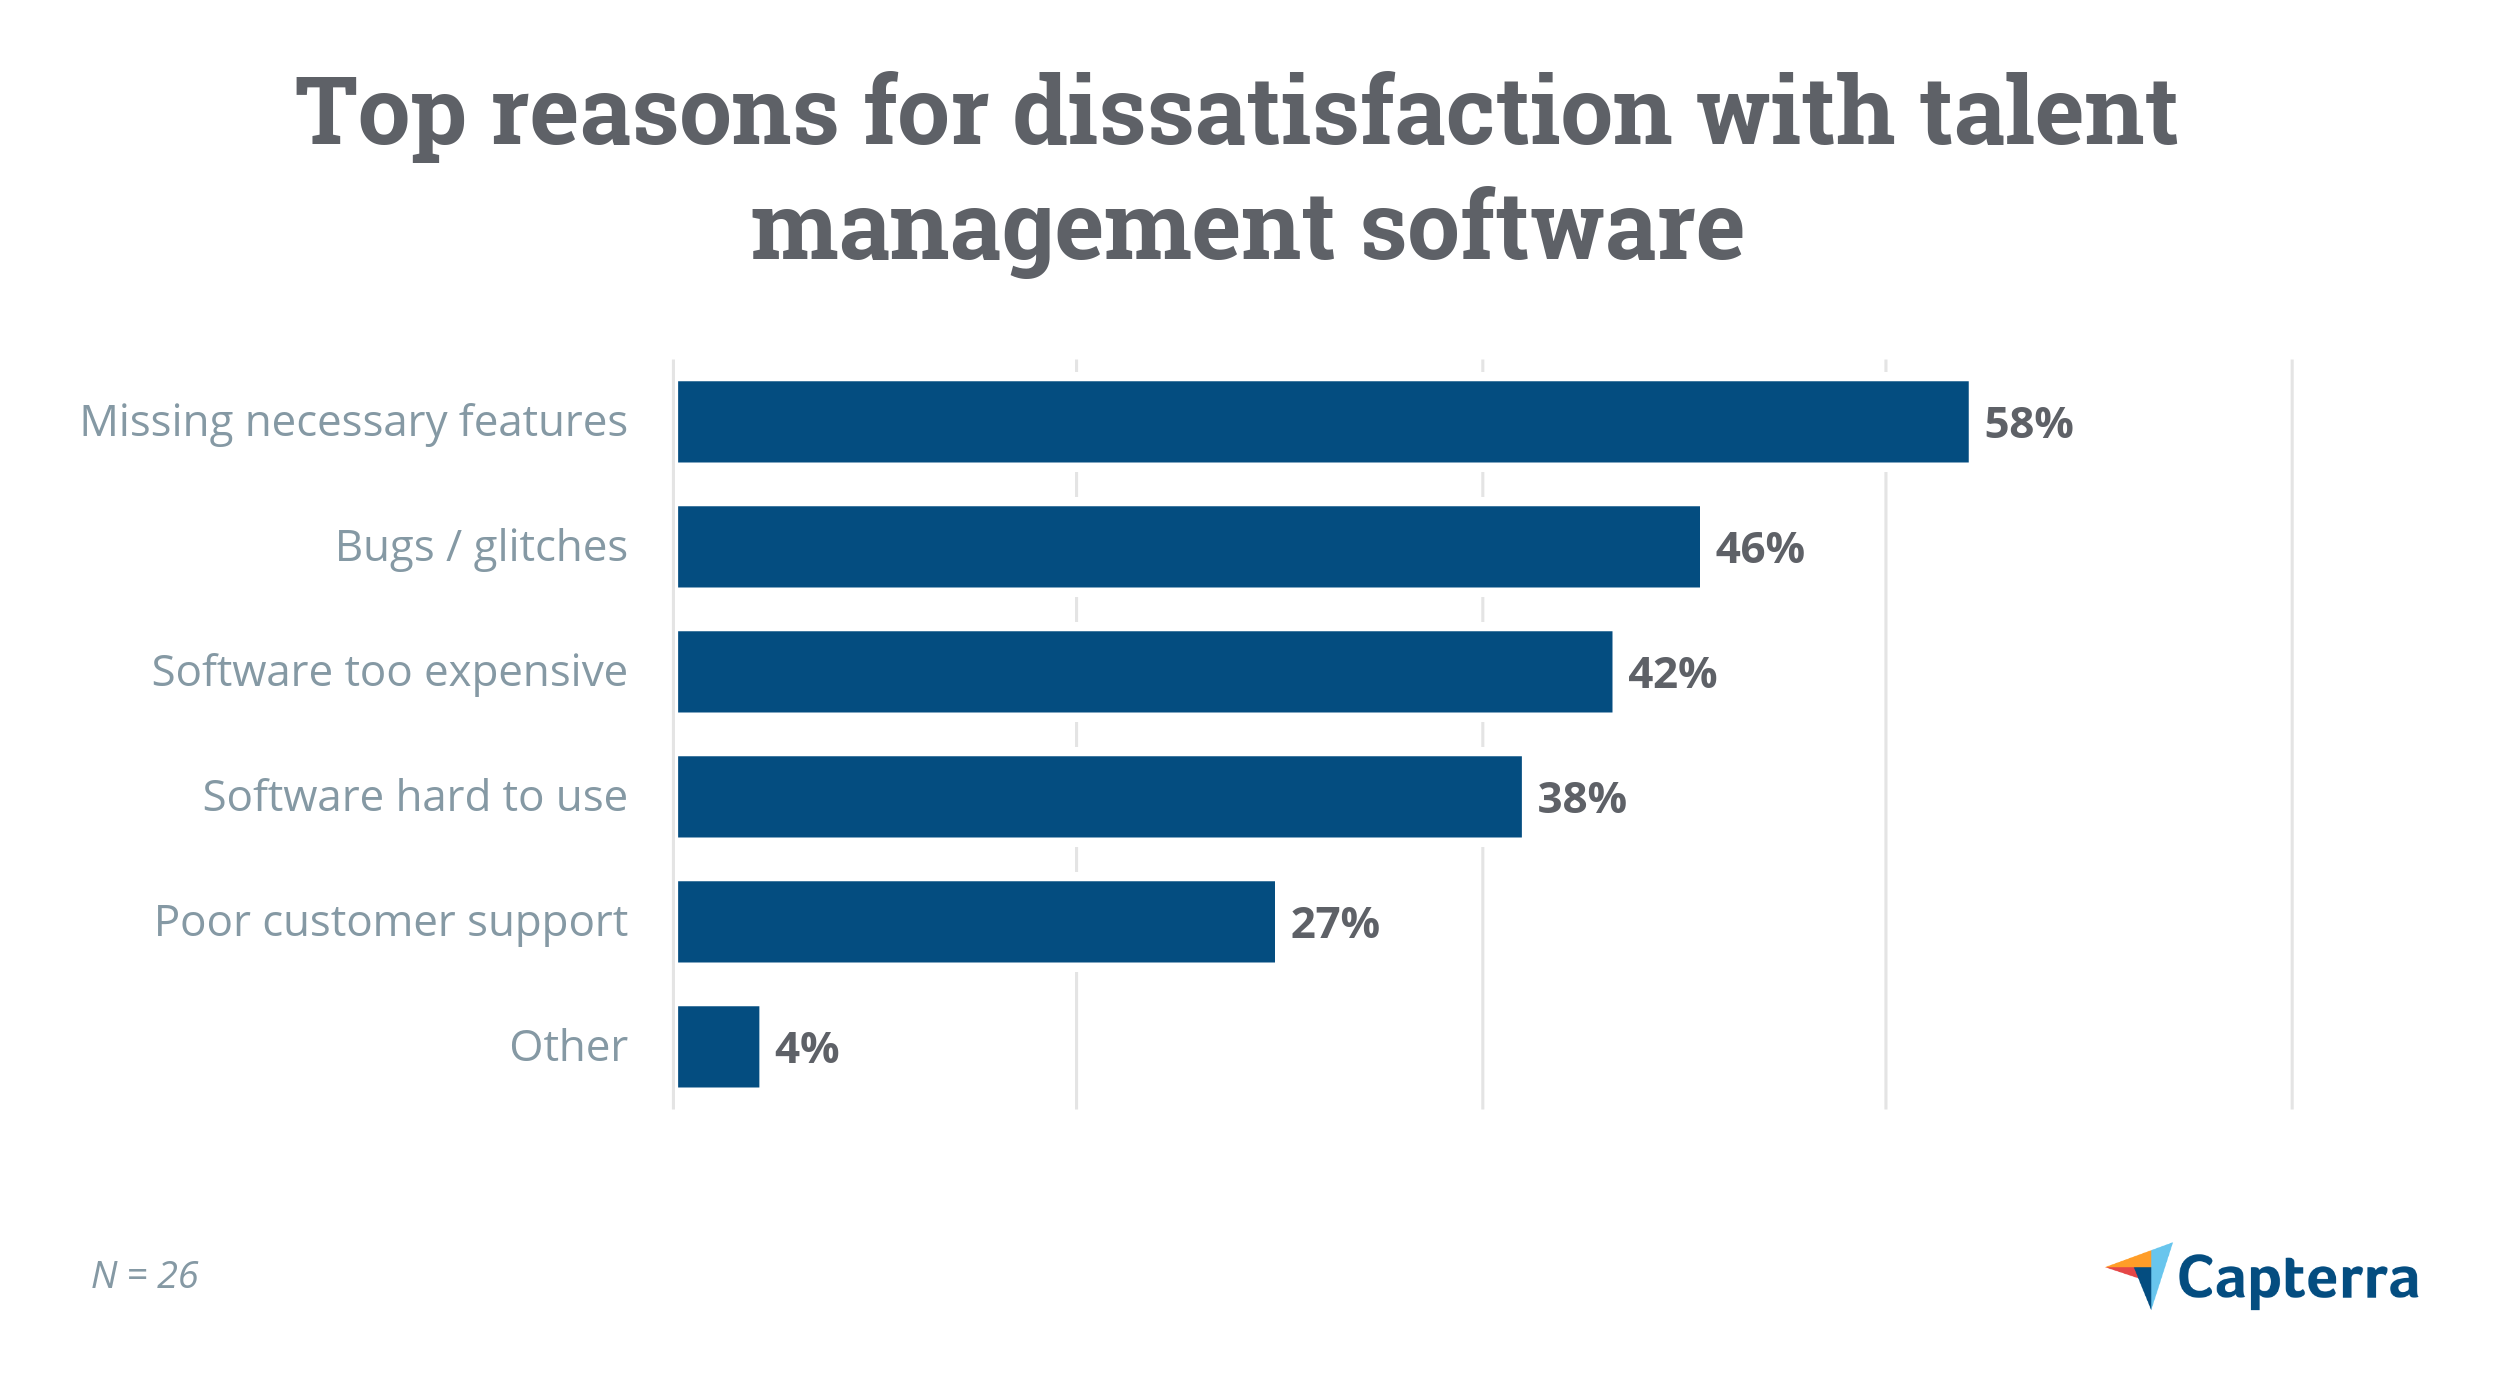 Top reasons for dissatisfaction with talent management software